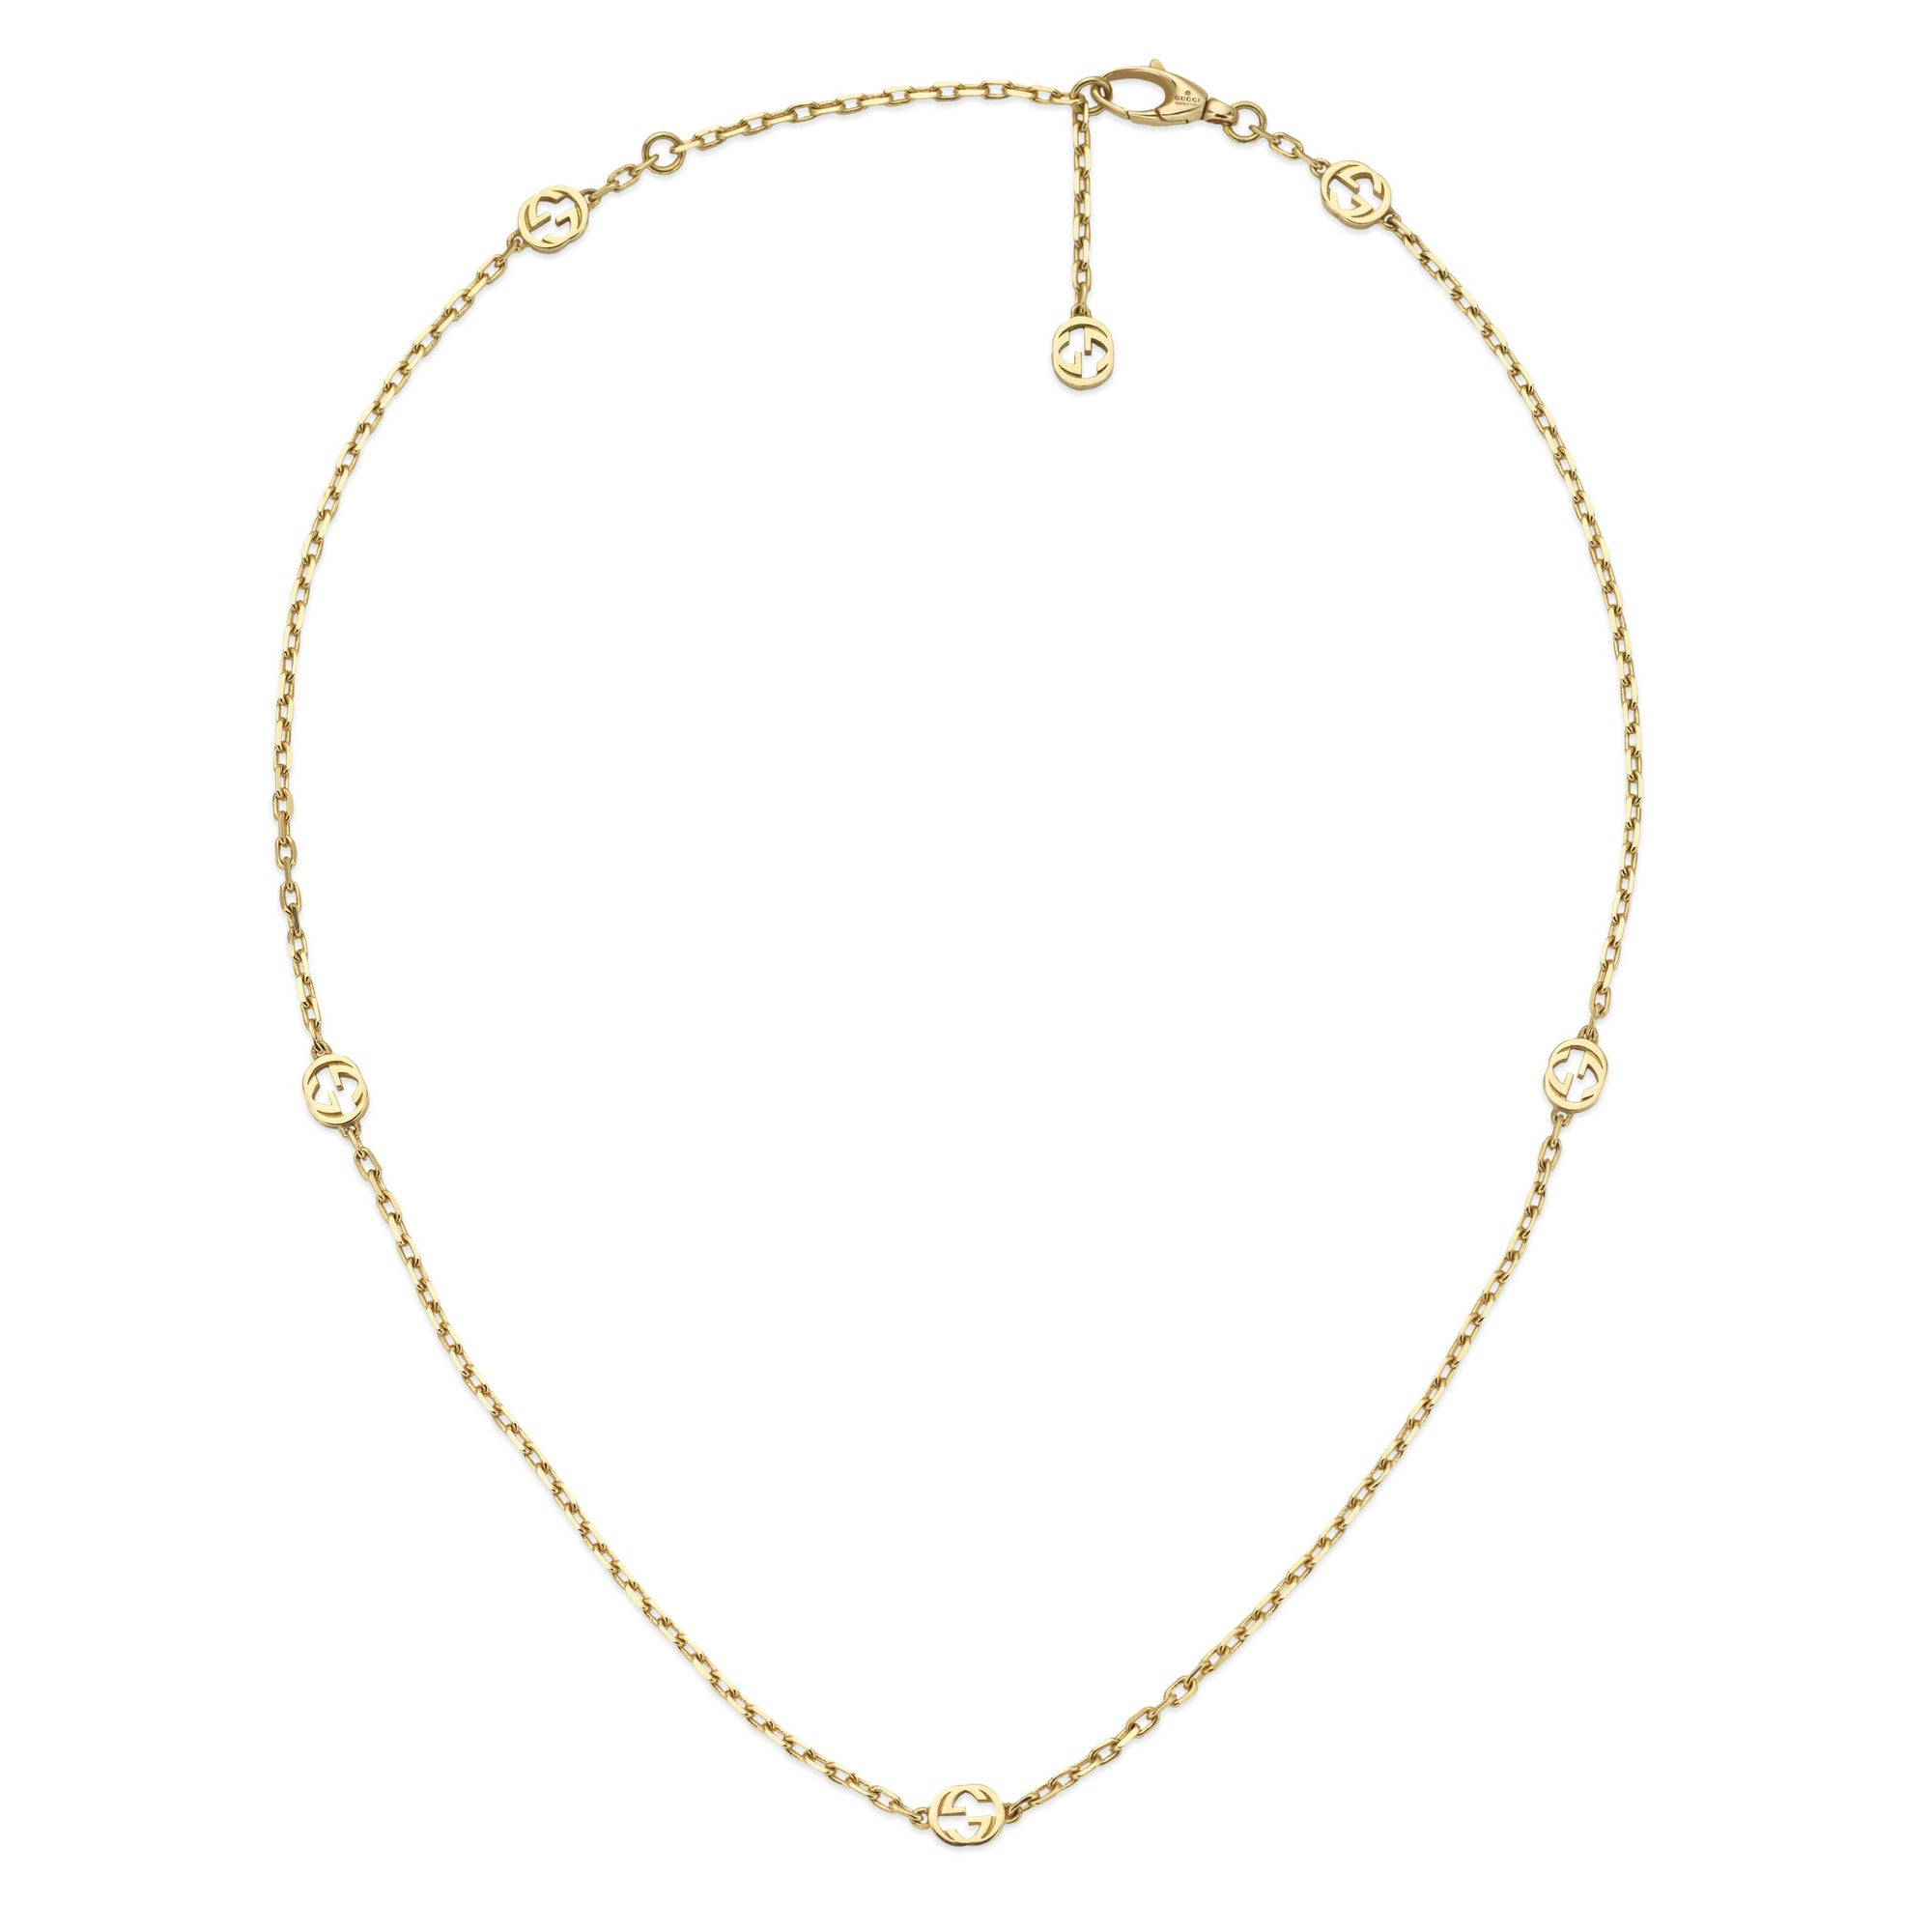 Gucci Interlocking G Necklace in 18k Yellow Gold (Short) - Orsini Jewellers NZ